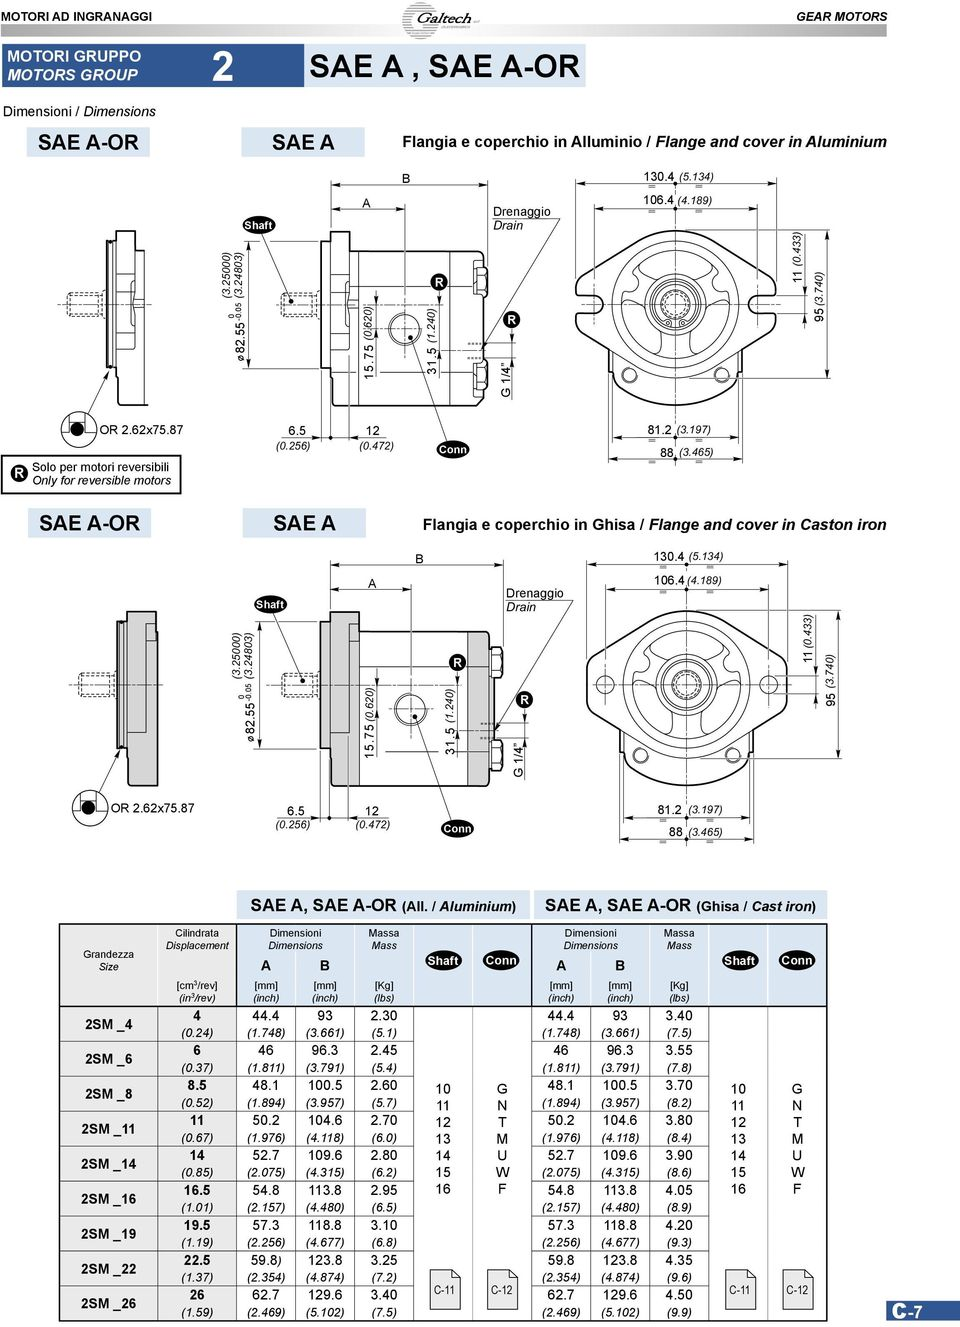 465) Solo per motori reversibili Only for reversible motors SE -O SE langia e coperchio in hisa / lange and cover in aston iron 130.4 (5.134) 106.4 (4.189) (3.25000) (3.24803) (0.433) 11 (3.